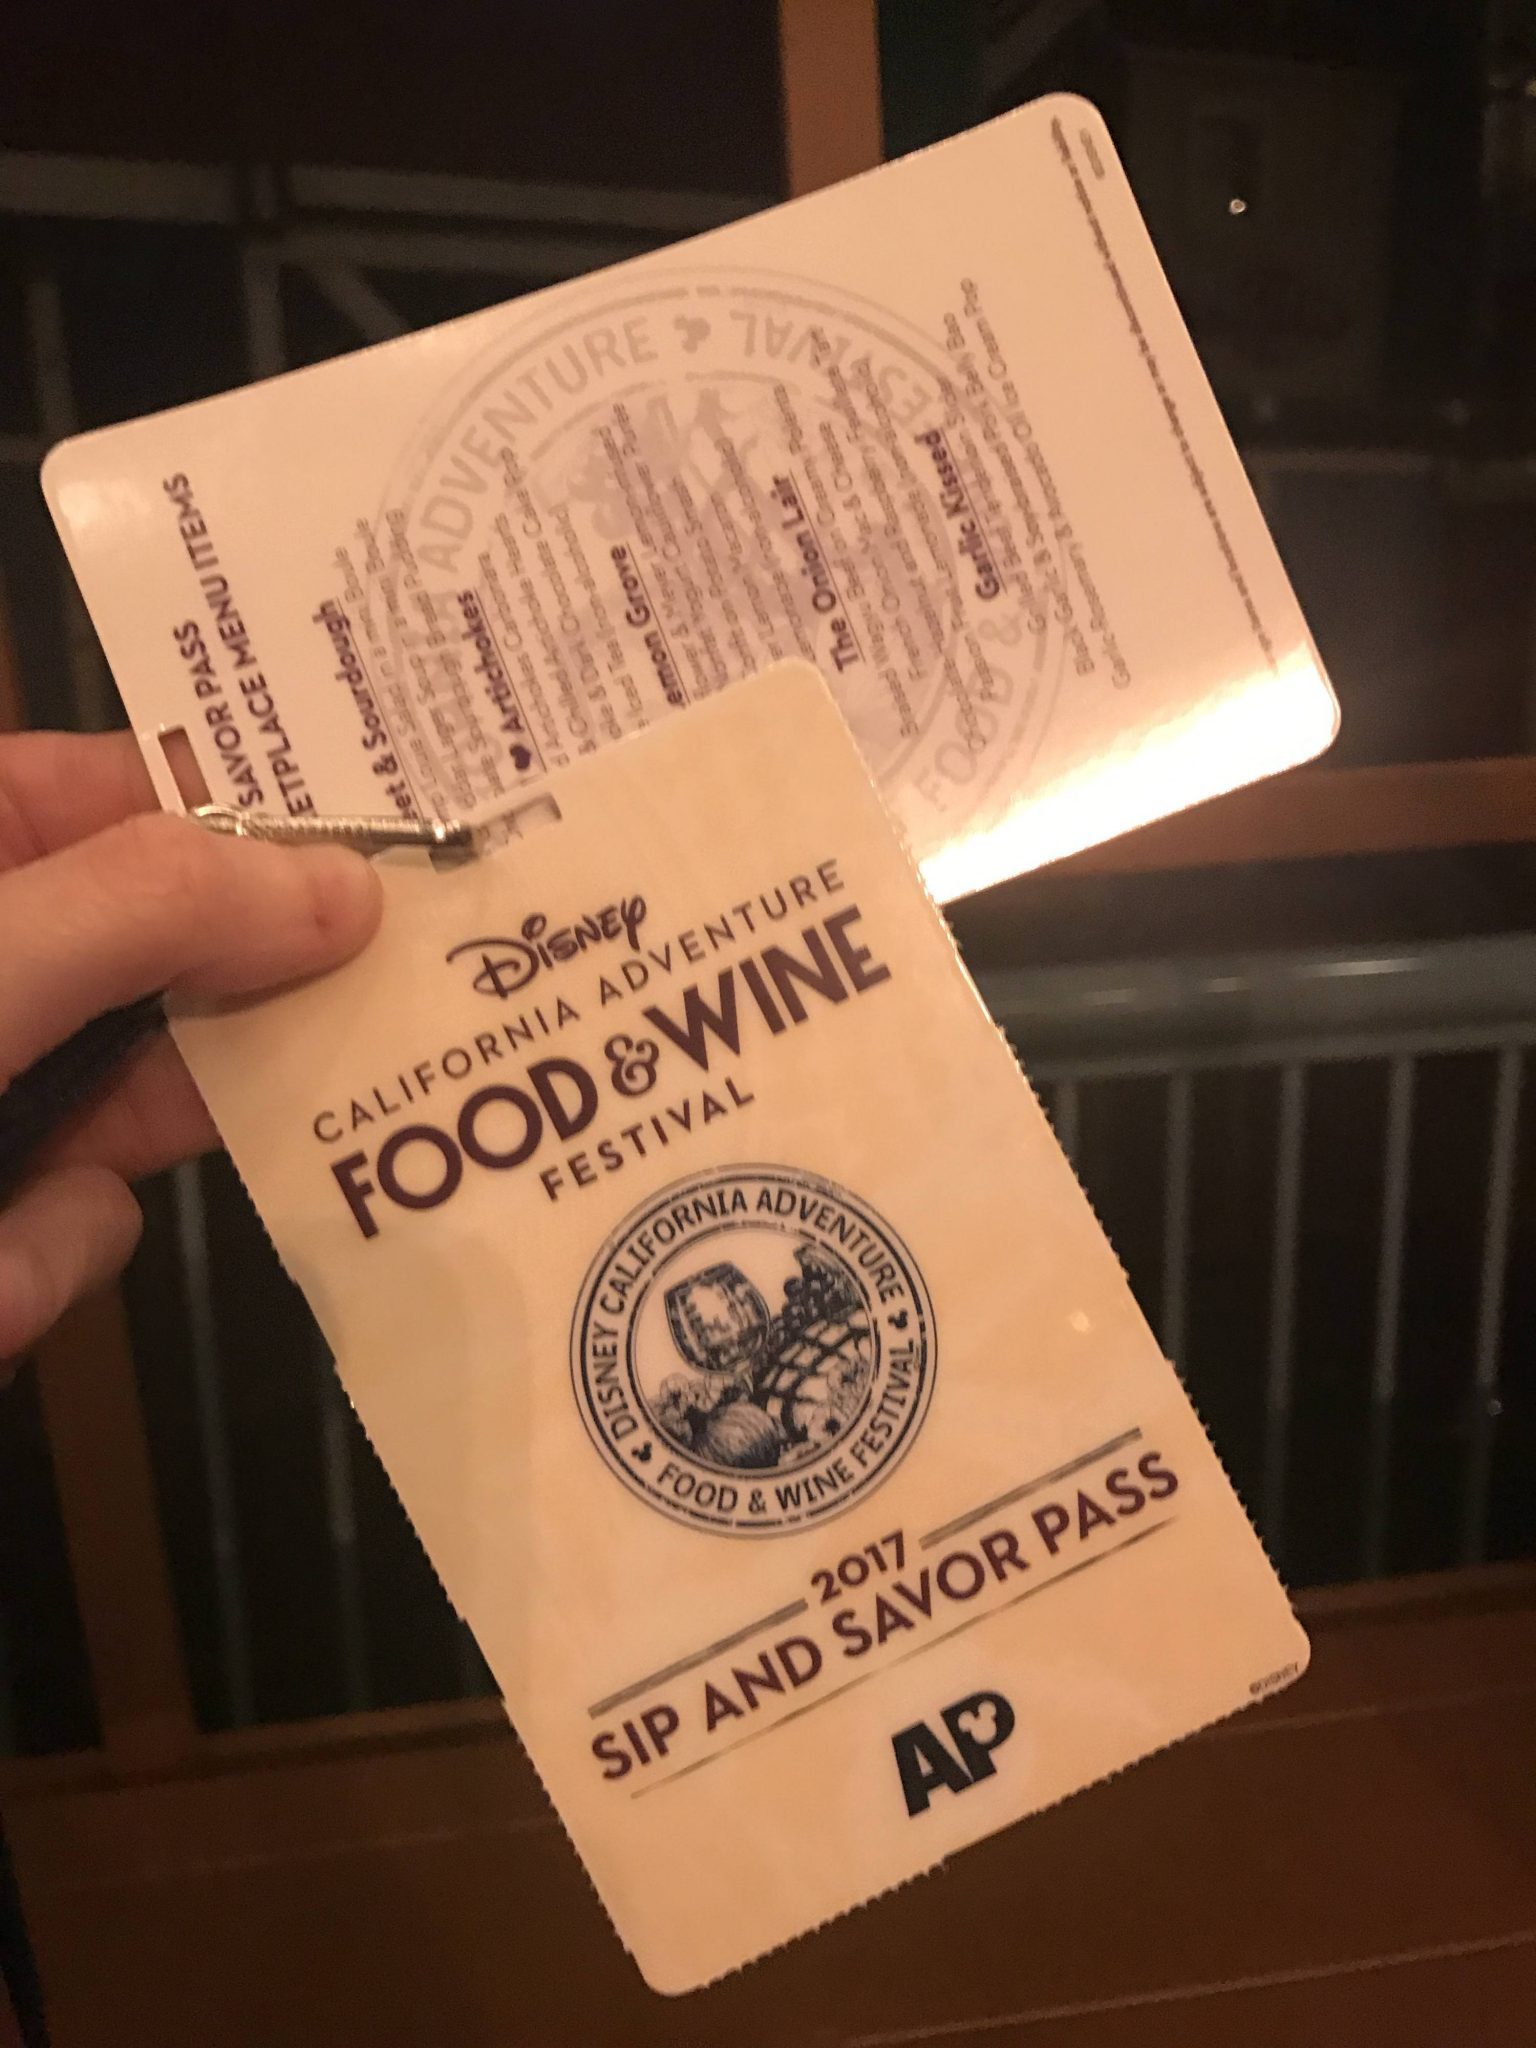 Annual Passholder Exclusive Sip and Savor Pass at Disney California Adventure Food & Wine Festival – Is It Worth It?